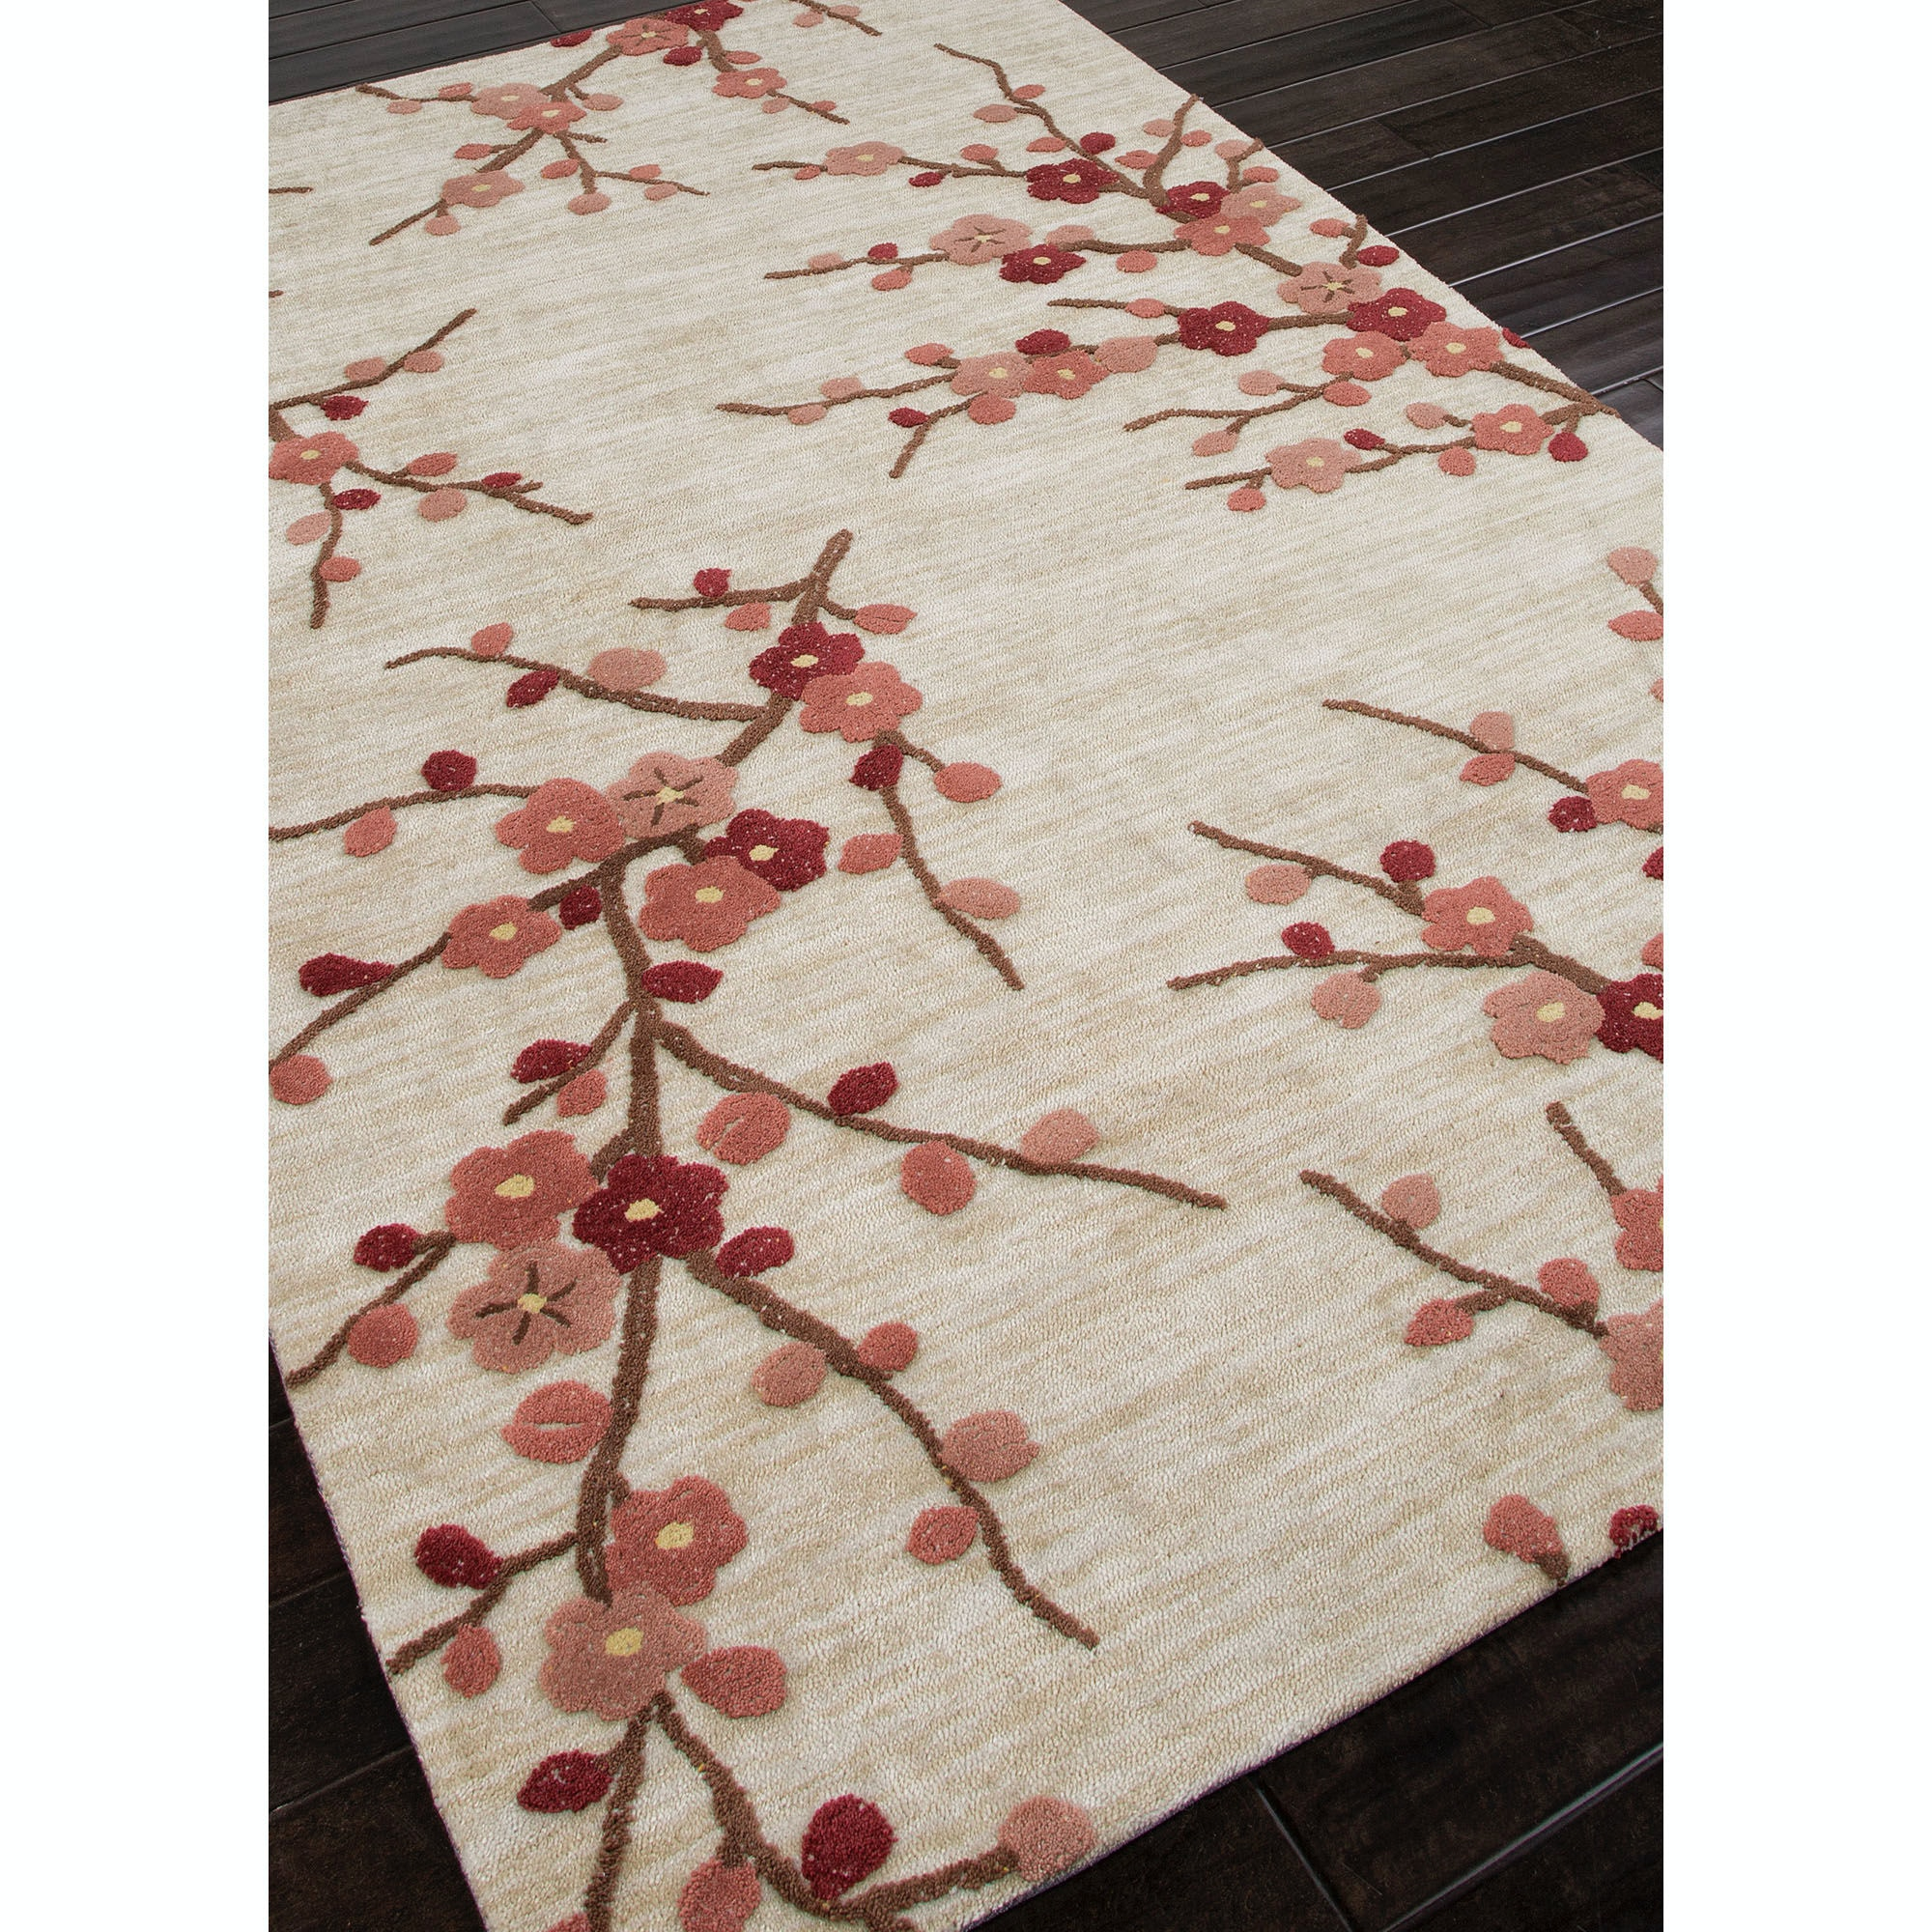 Cherry Blossom Area Rug Part - 46: Jaipur Rugs Hand-Tufted Floral Pattern Polyester Ivory/Red Area Rug ( 3.6x5